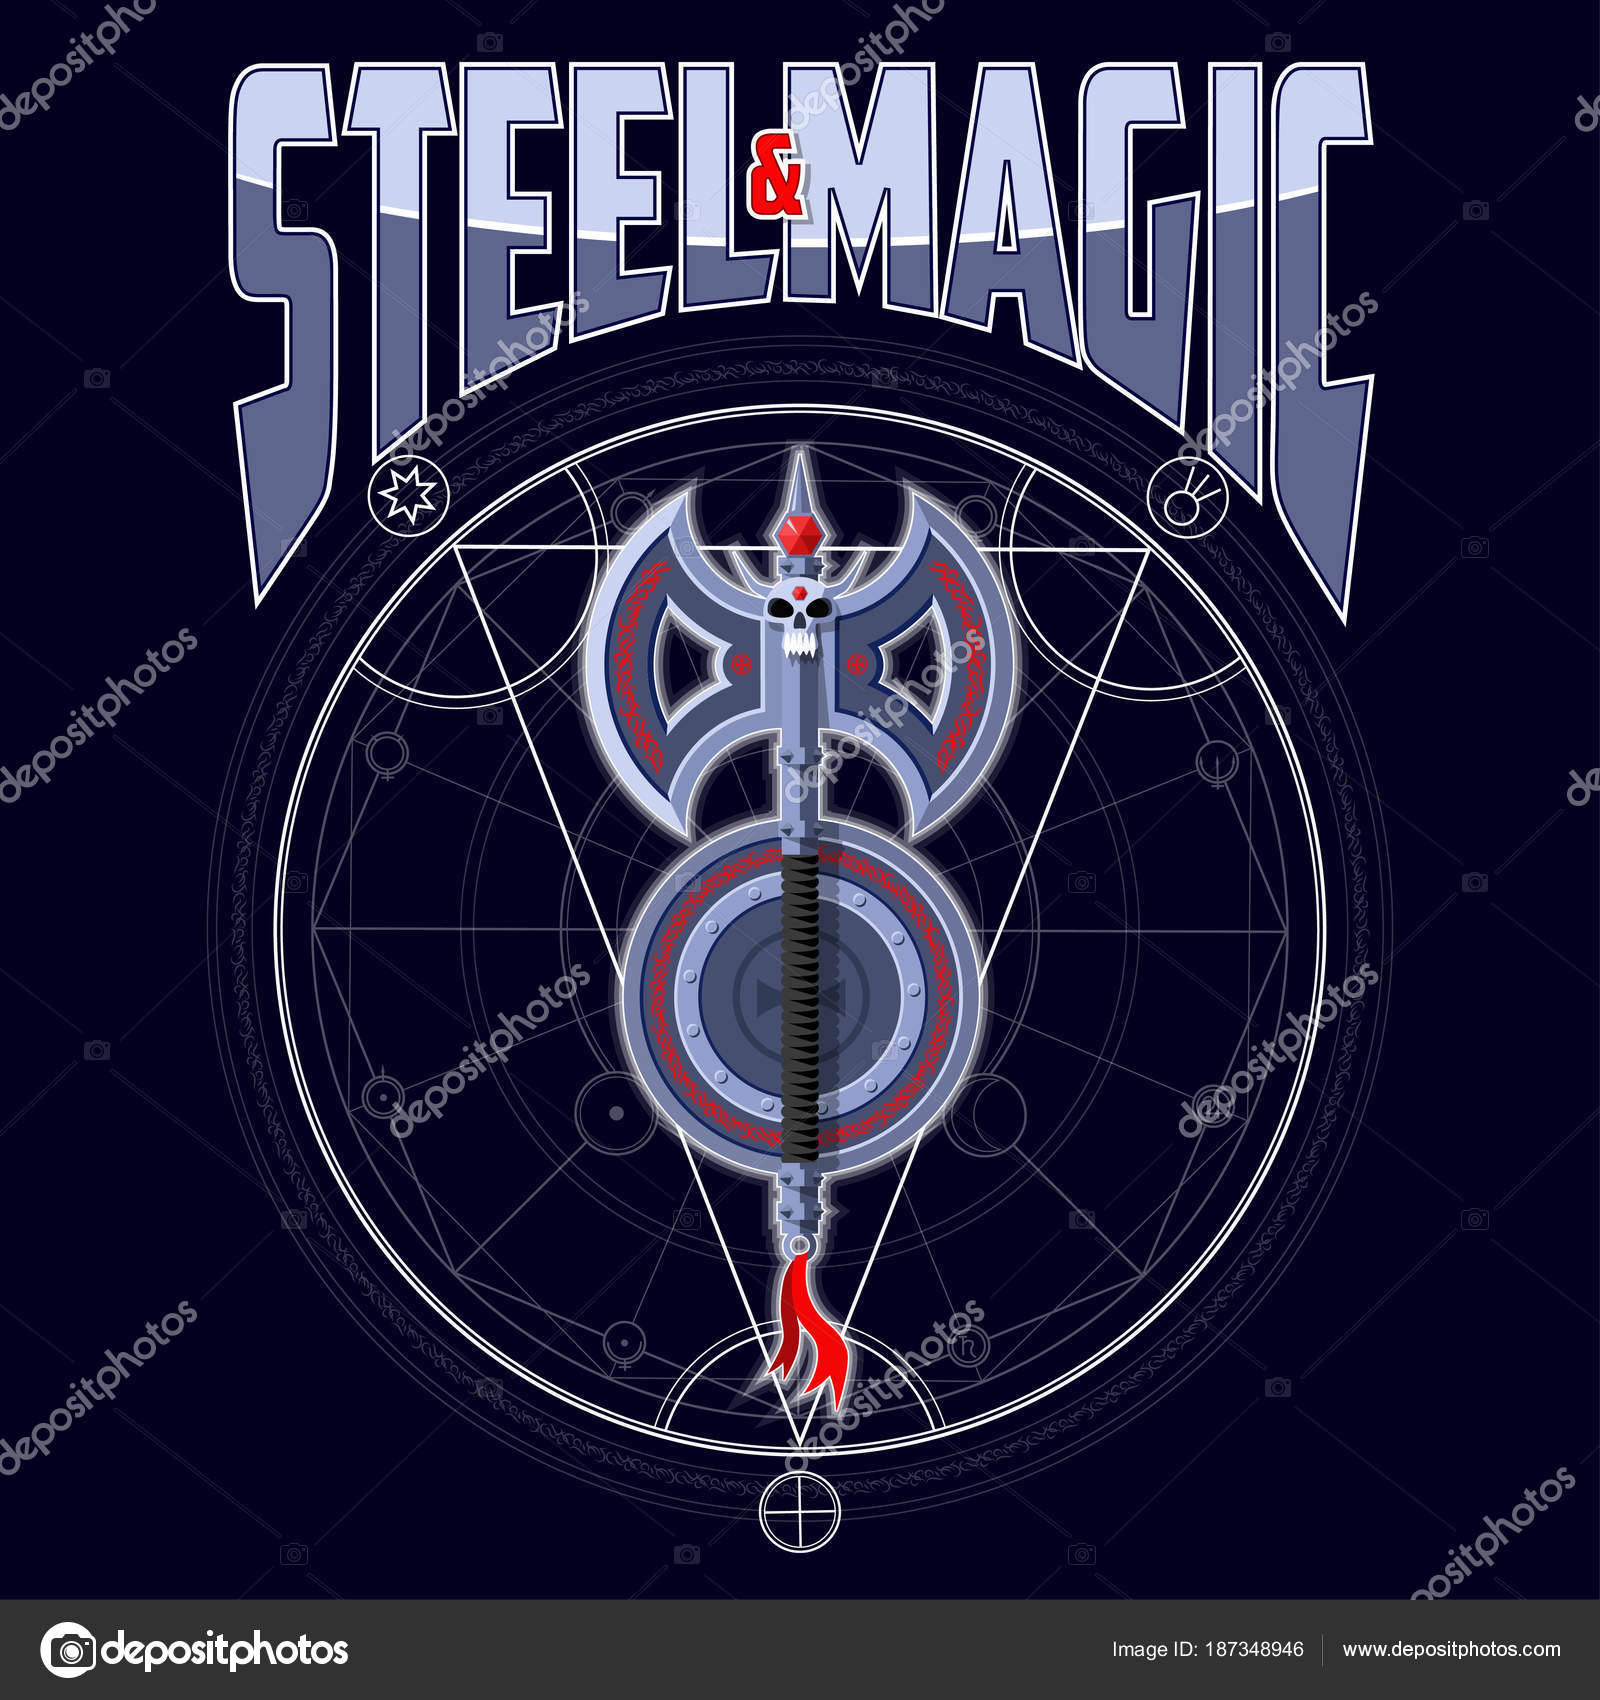 Axe shield runes dark magical background emblem symbols planets axe and shield with runes on a dark magical background emblem with the symbols of the planets background text and magic circle are located on separate buycottarizona Choice Image